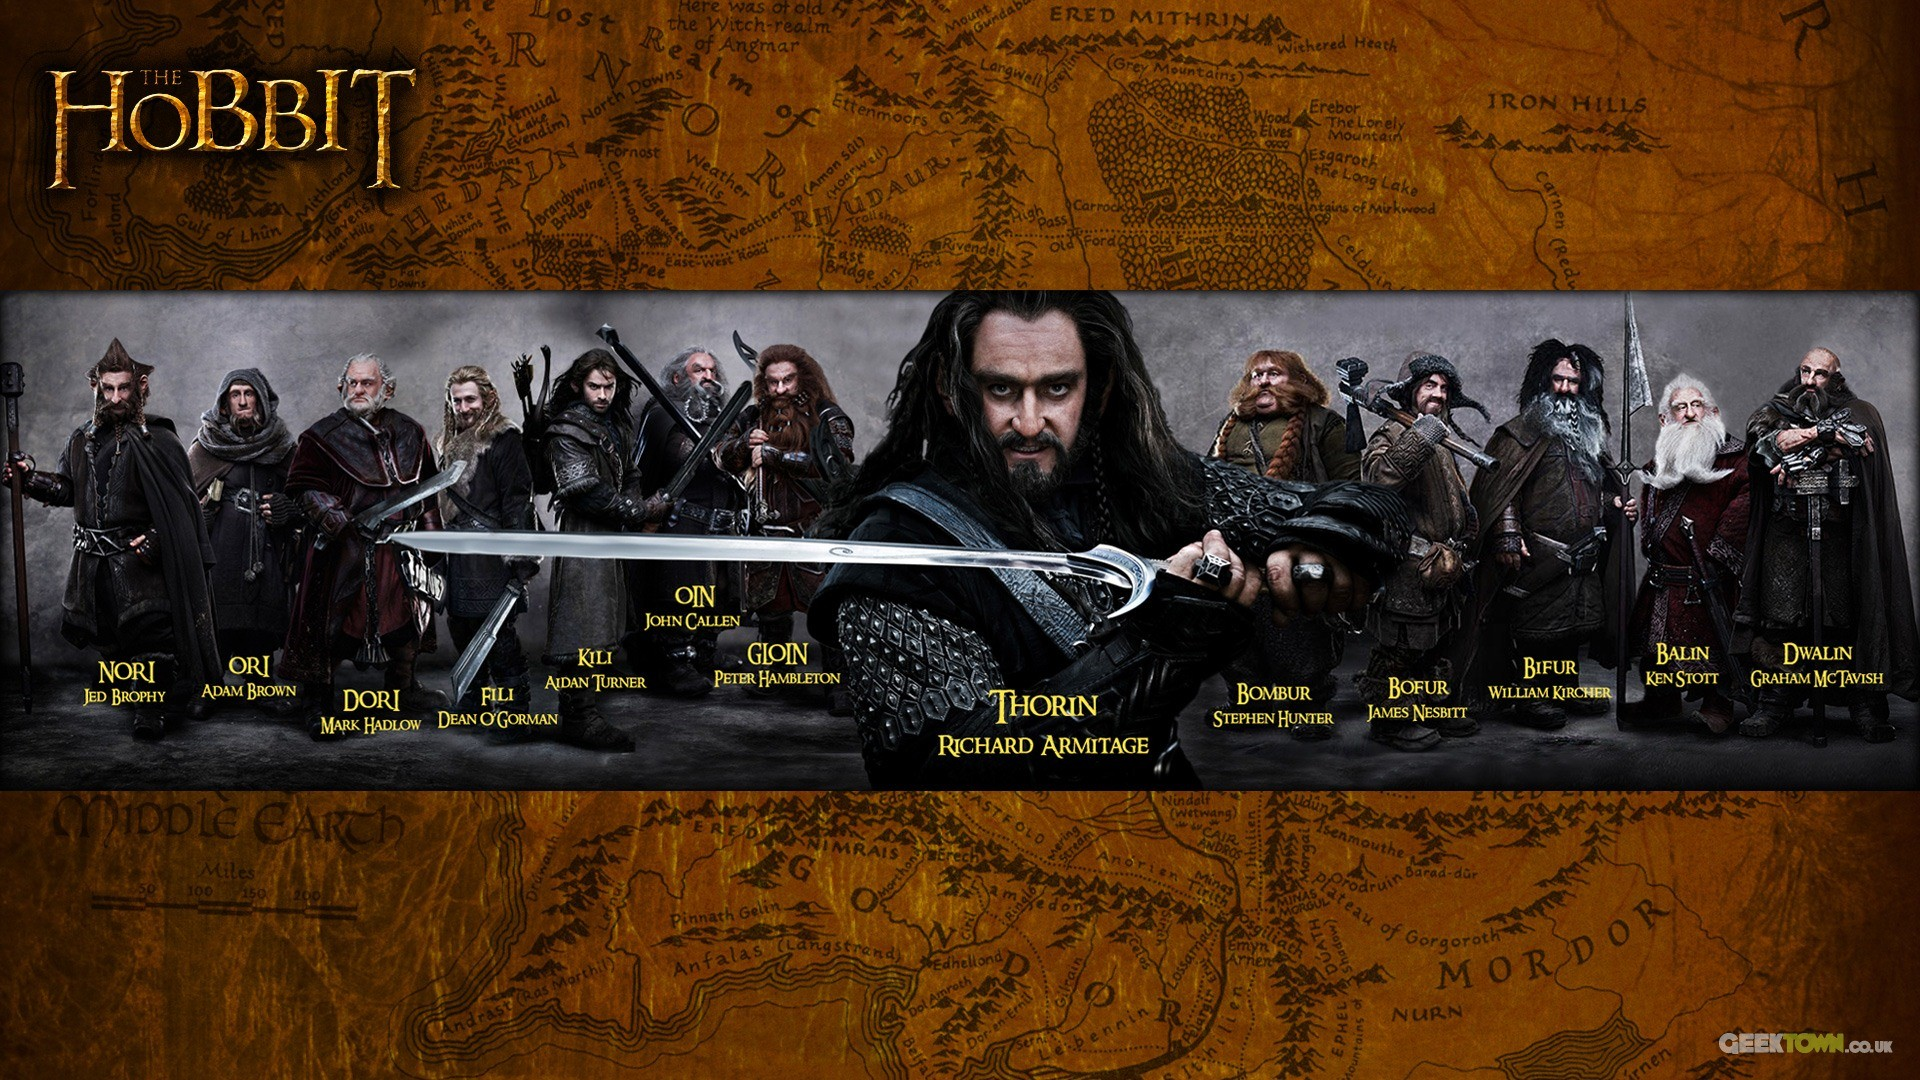 The Hobbit: An Unexpected Journey HD wallpapers #14 – 1920×1080.